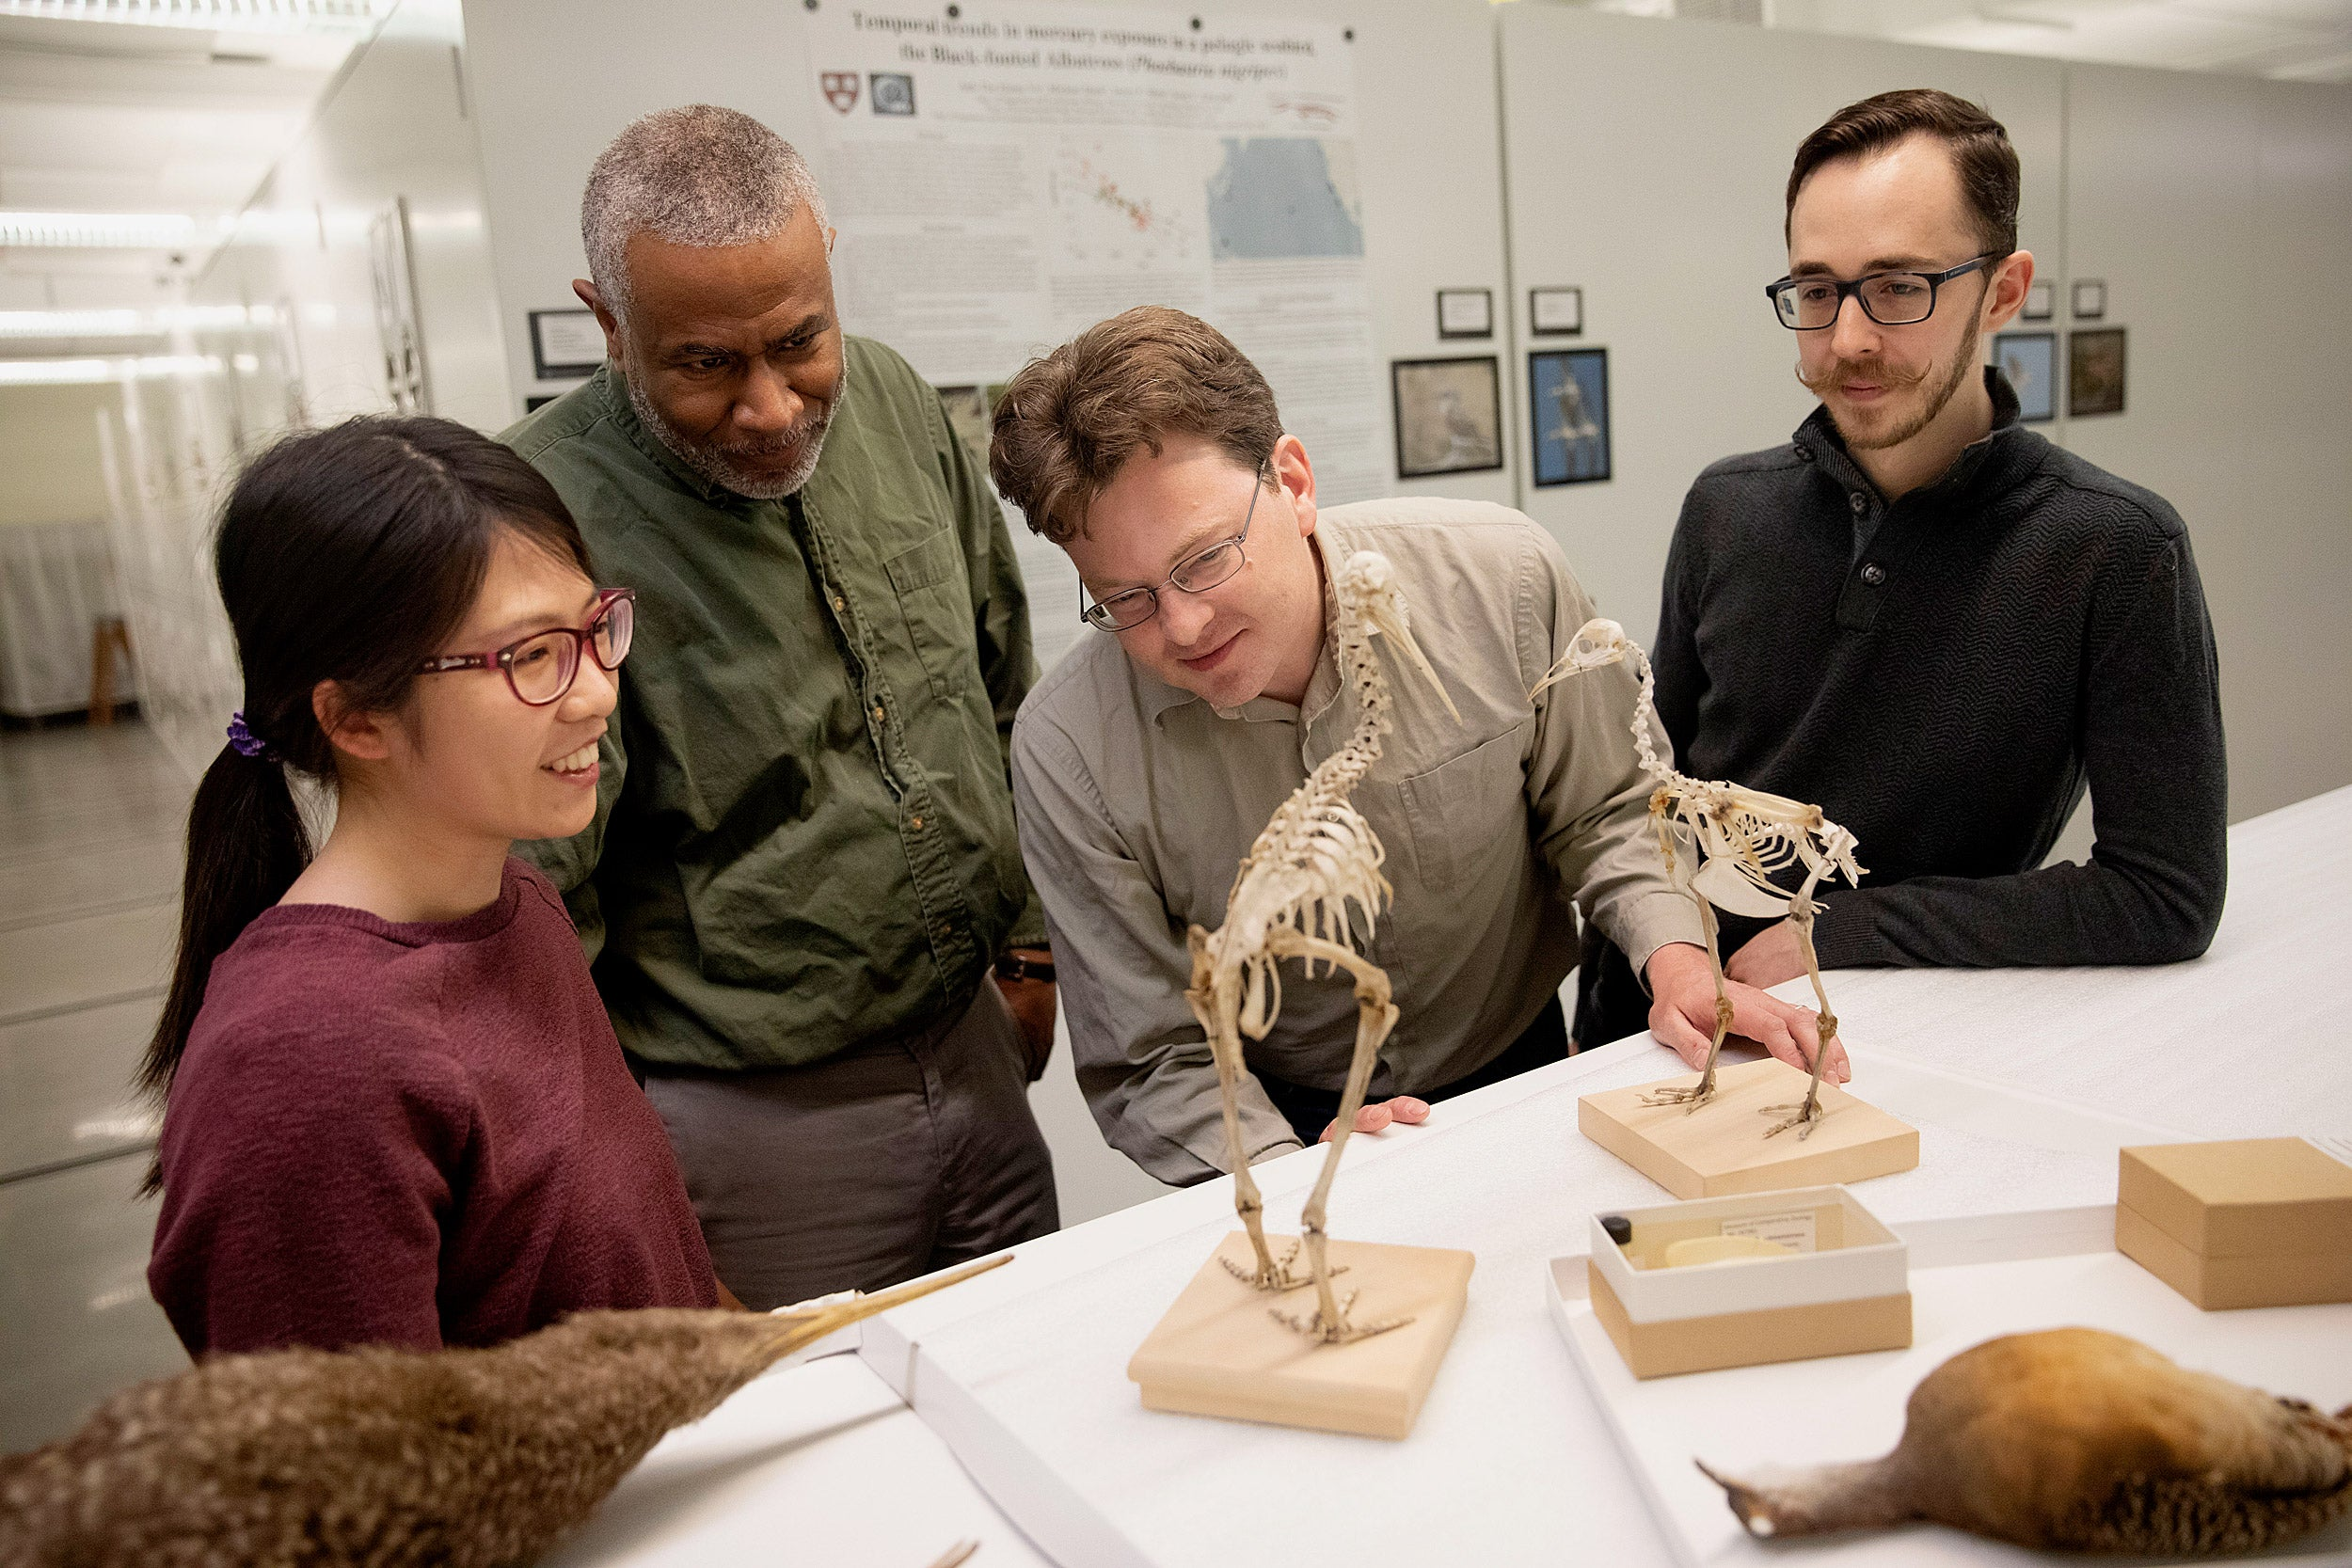 Researchers display skeletons of flightless birds.